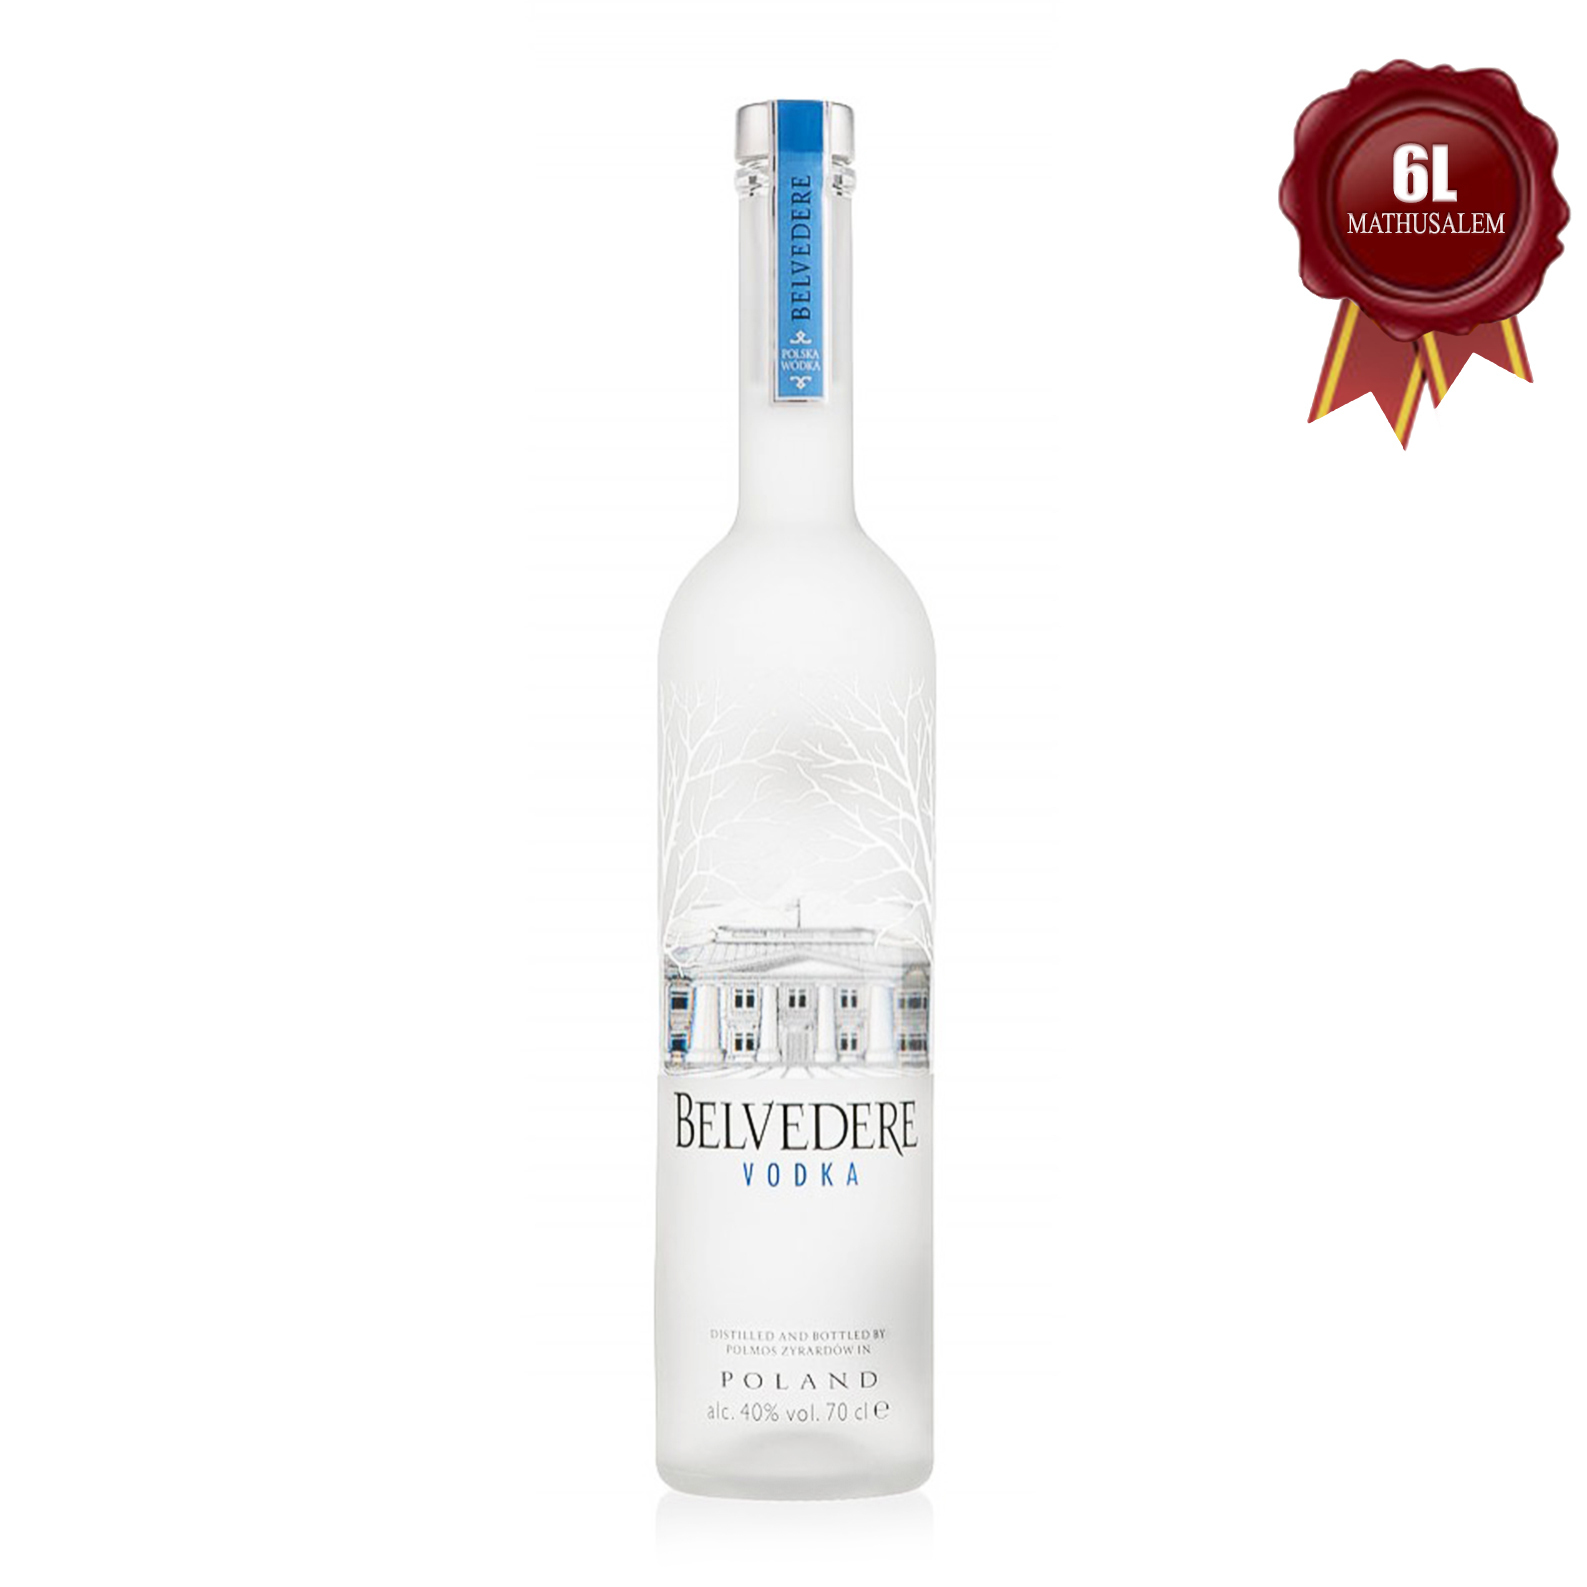 Pure Original Polish Luxury Vodka - 600cl - Belvedere